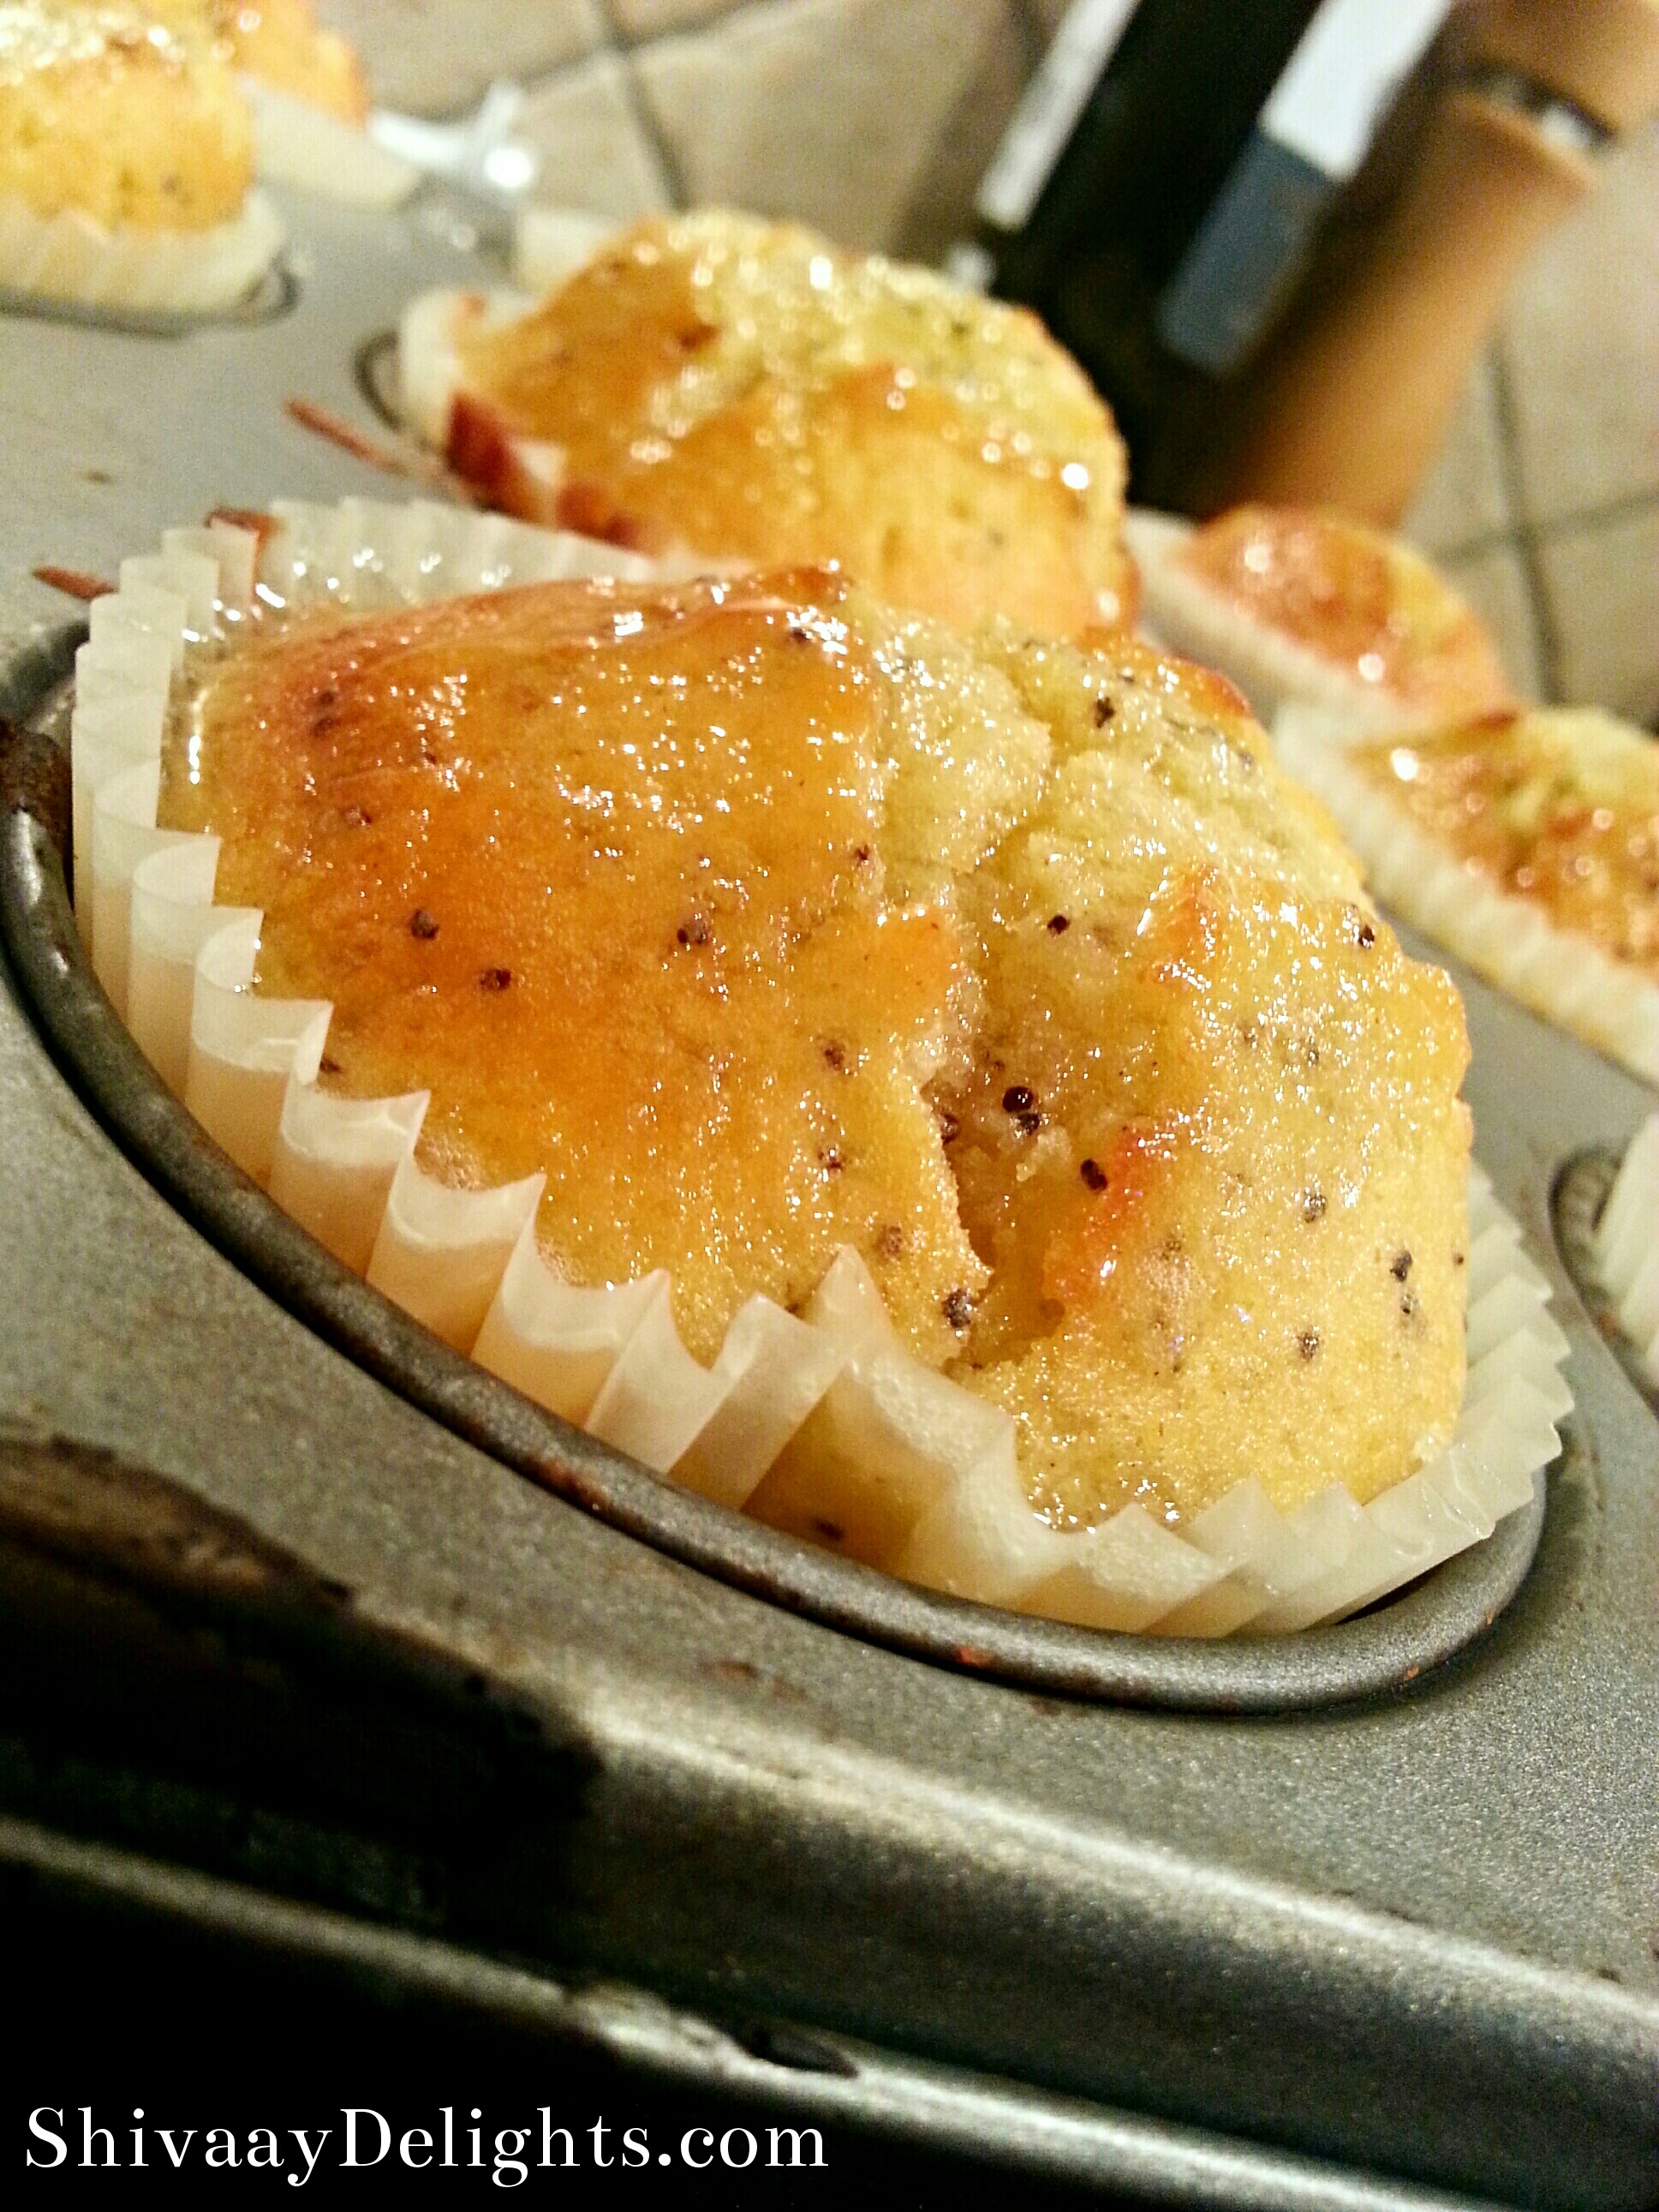 Lemon pop pop…poppy seed muffin cakes